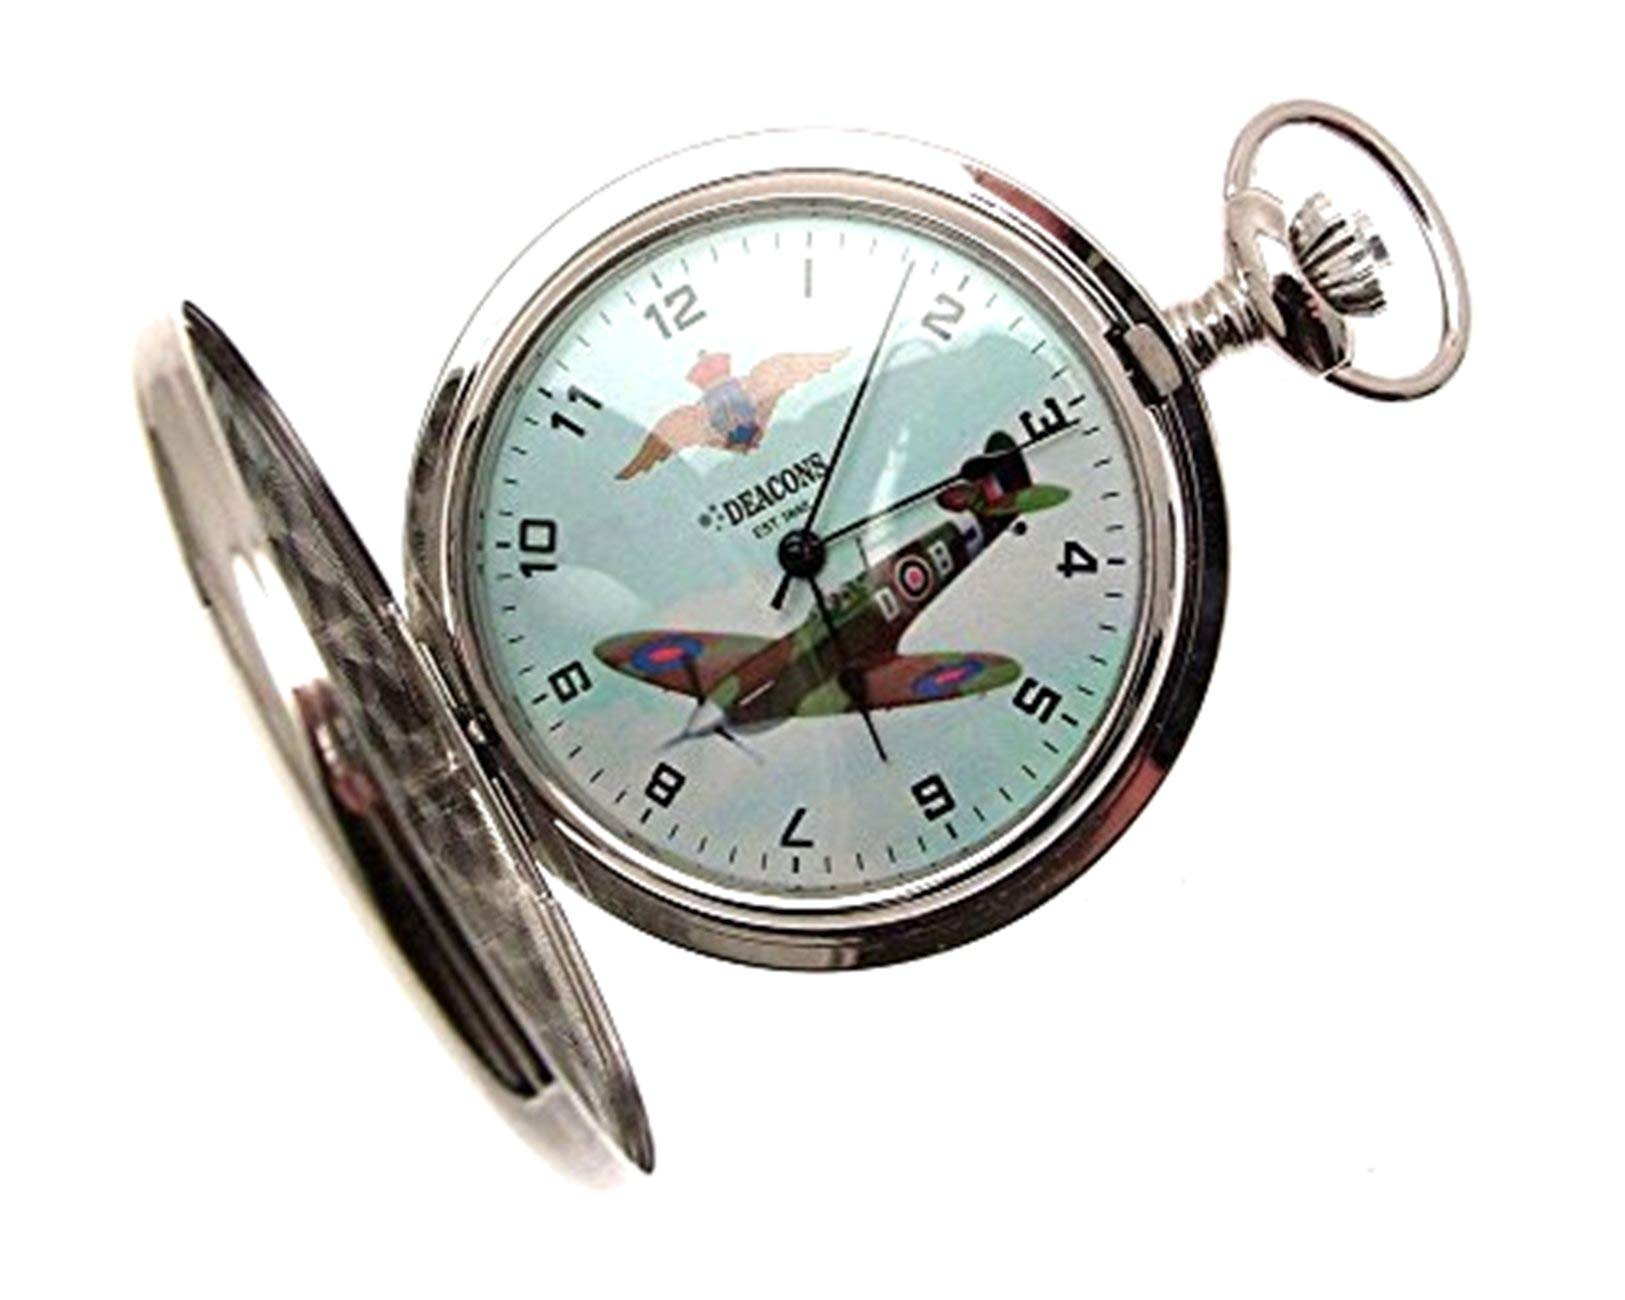 Pocket Watches for Men Gifts for Men Spitfire Pocket Watch Spitfire Watch